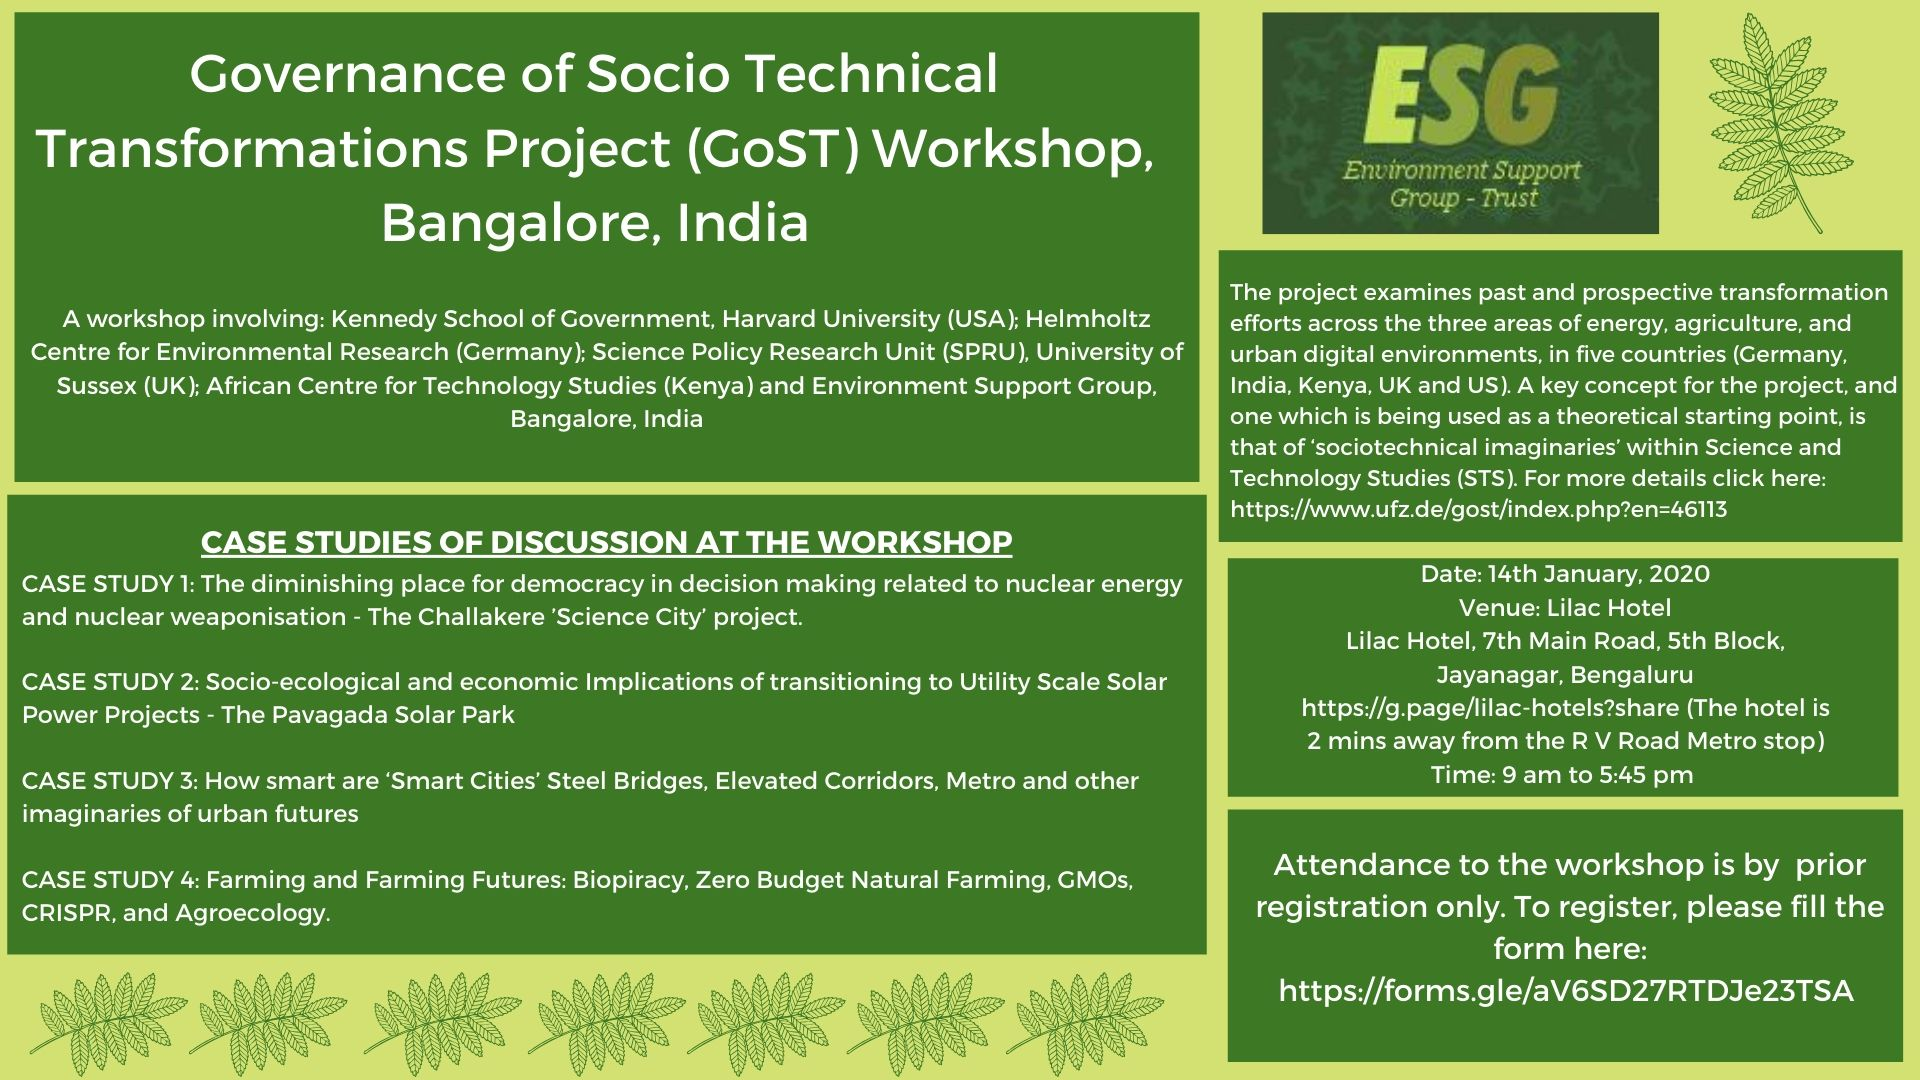 Governance of Socio Technical Transformations Project (GoST) Workshop, Bangalore, India